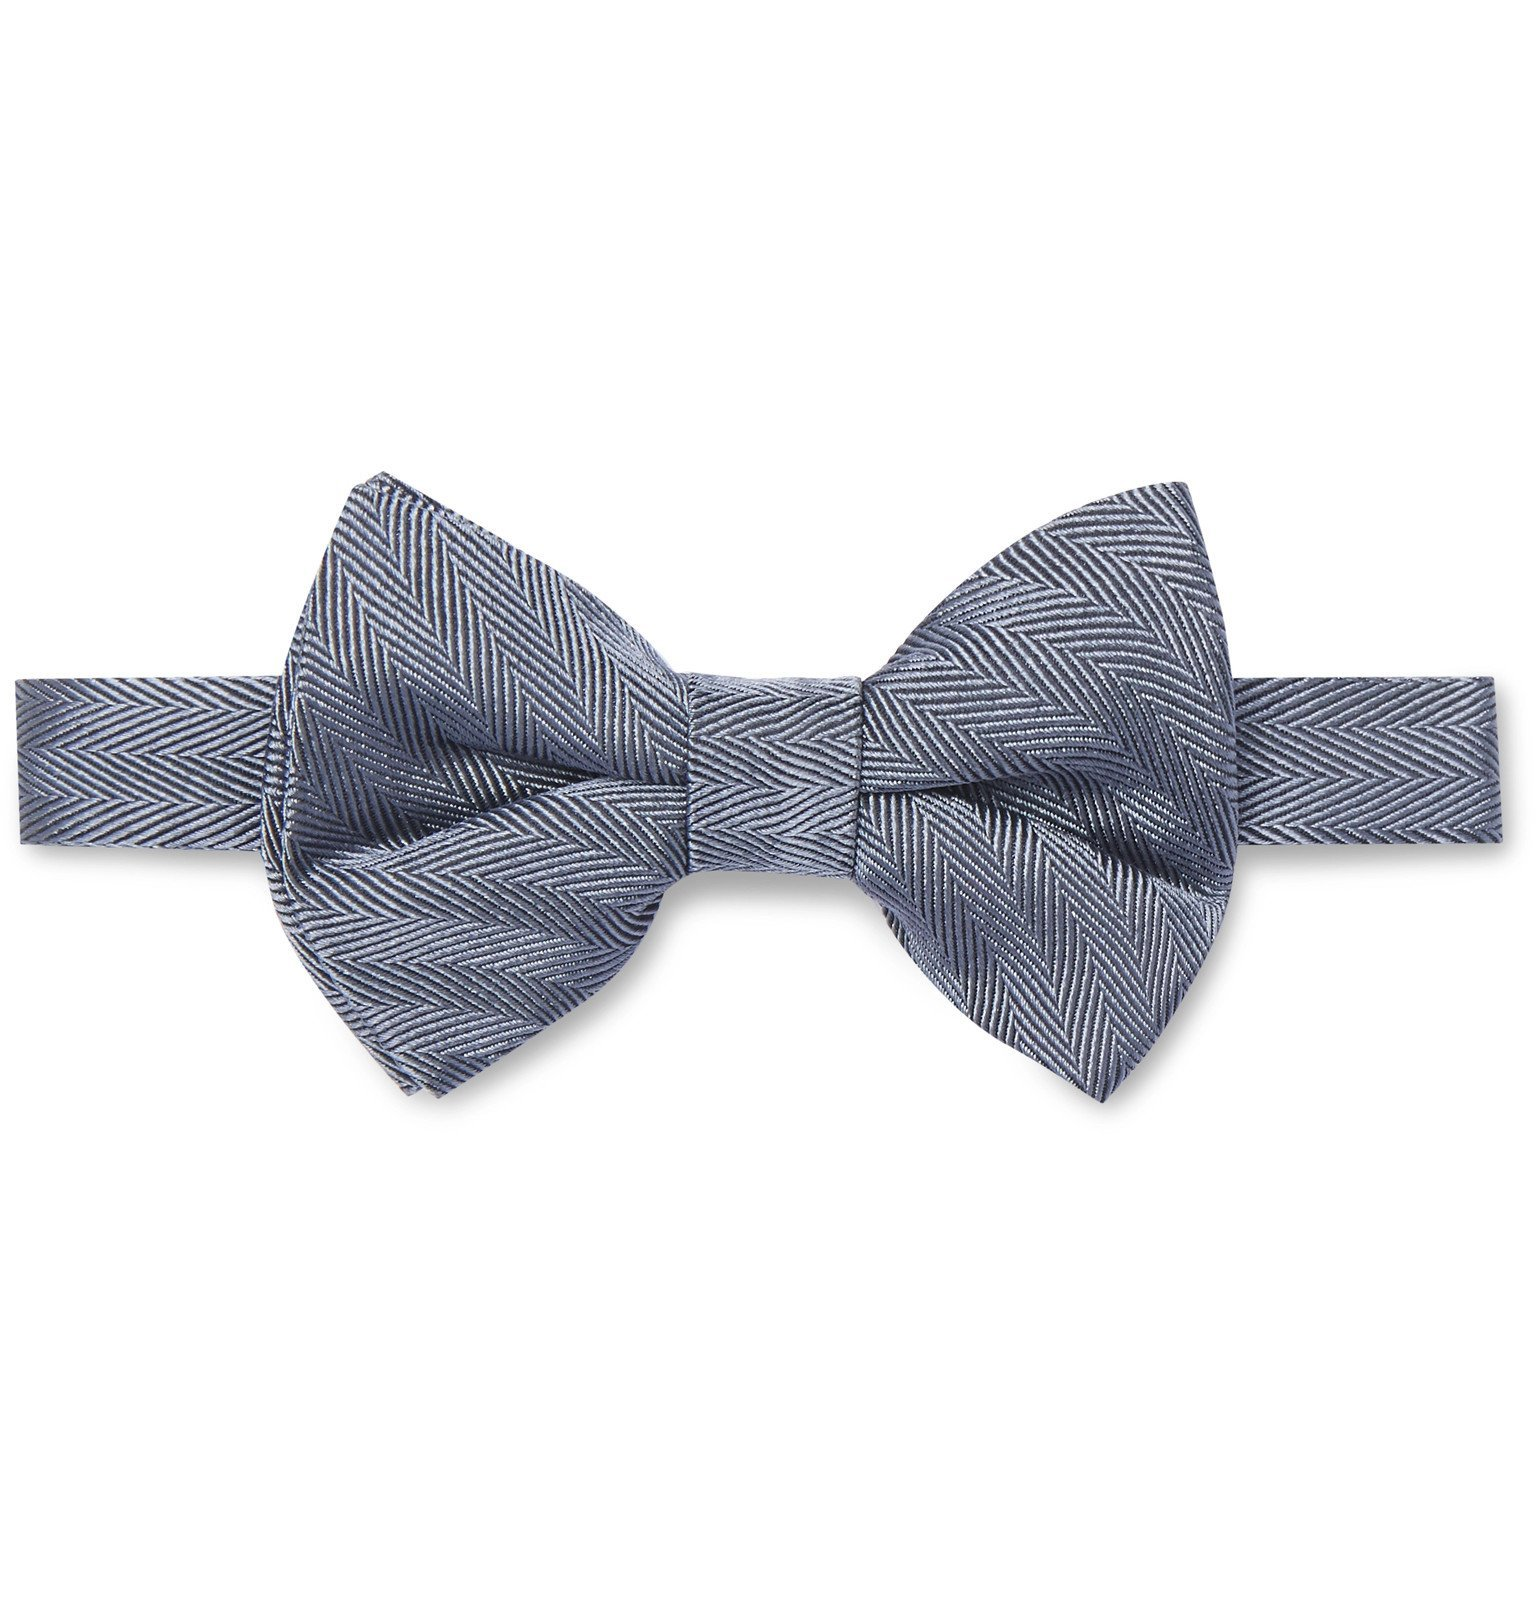 Dunhill - 7cm Striped Wool and Mulberry Silk-Blend Tie - Blue